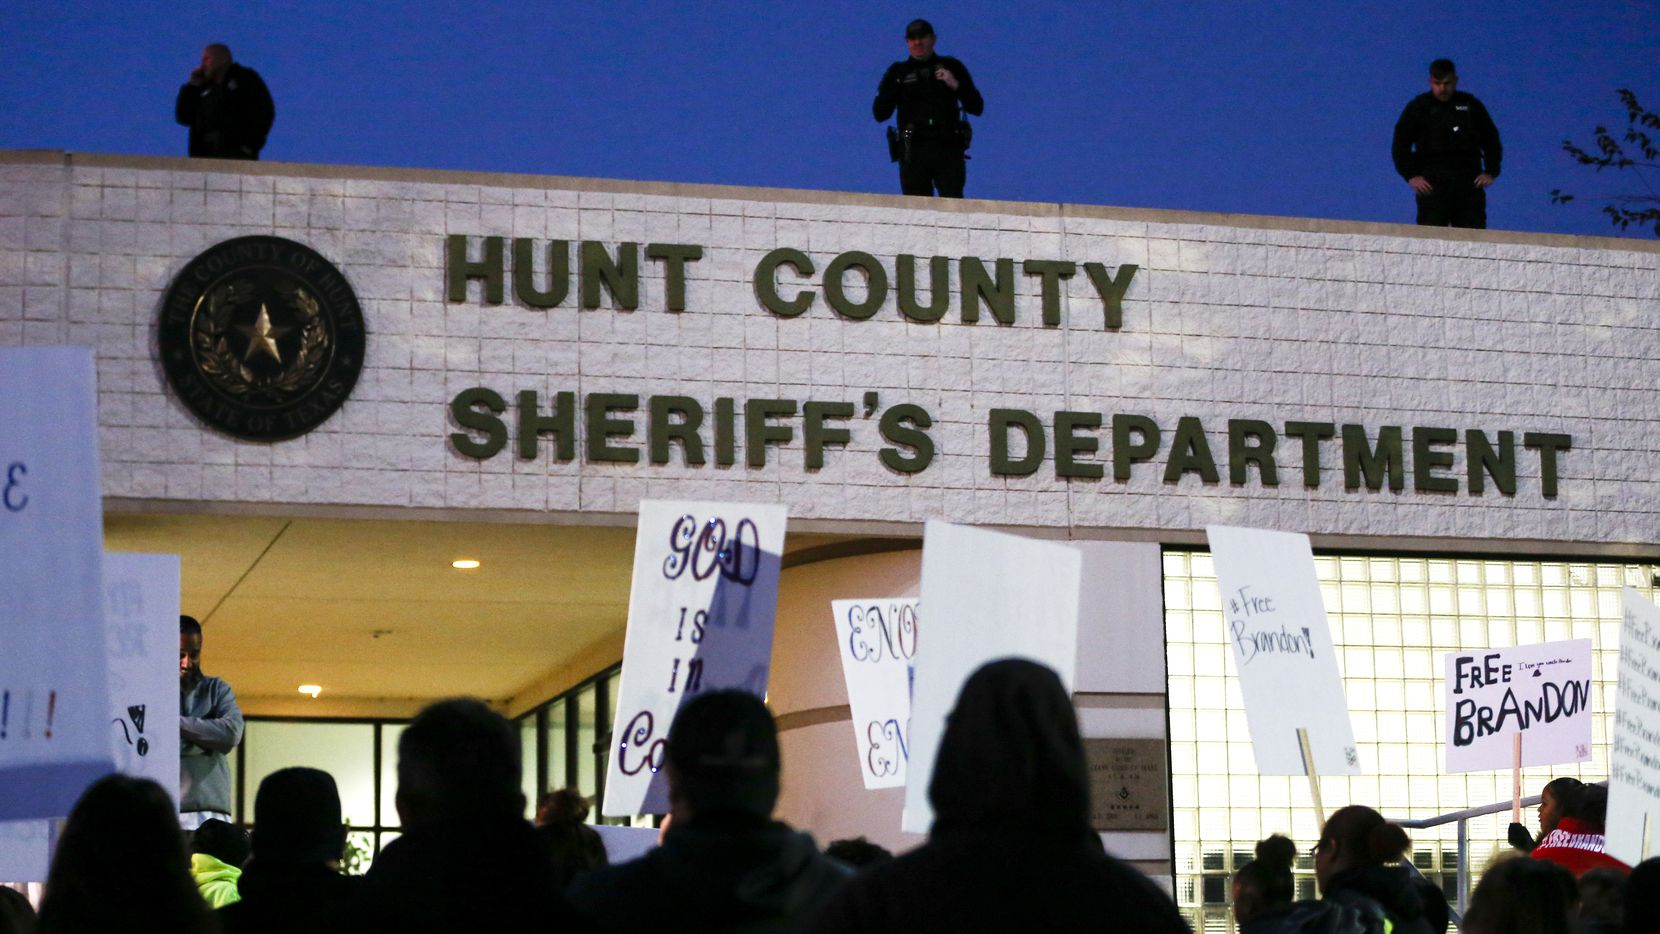 Roof top police watch as demonstrators gather at the Hunt County Sheriff's Department in downtown Greenville, Texas, Saturday, Nov. 2, 2019, calling for the release of Brandon Ray Gonzales, 23.  A witness claimed the suspect open fire at an off-campus college Halloween party in Texas, killing two people and injuring six more, according to an arrest affidavit. Gonzales is being held on a capital murder charge in the Hunt County Jail. His bail is set at $1 million.